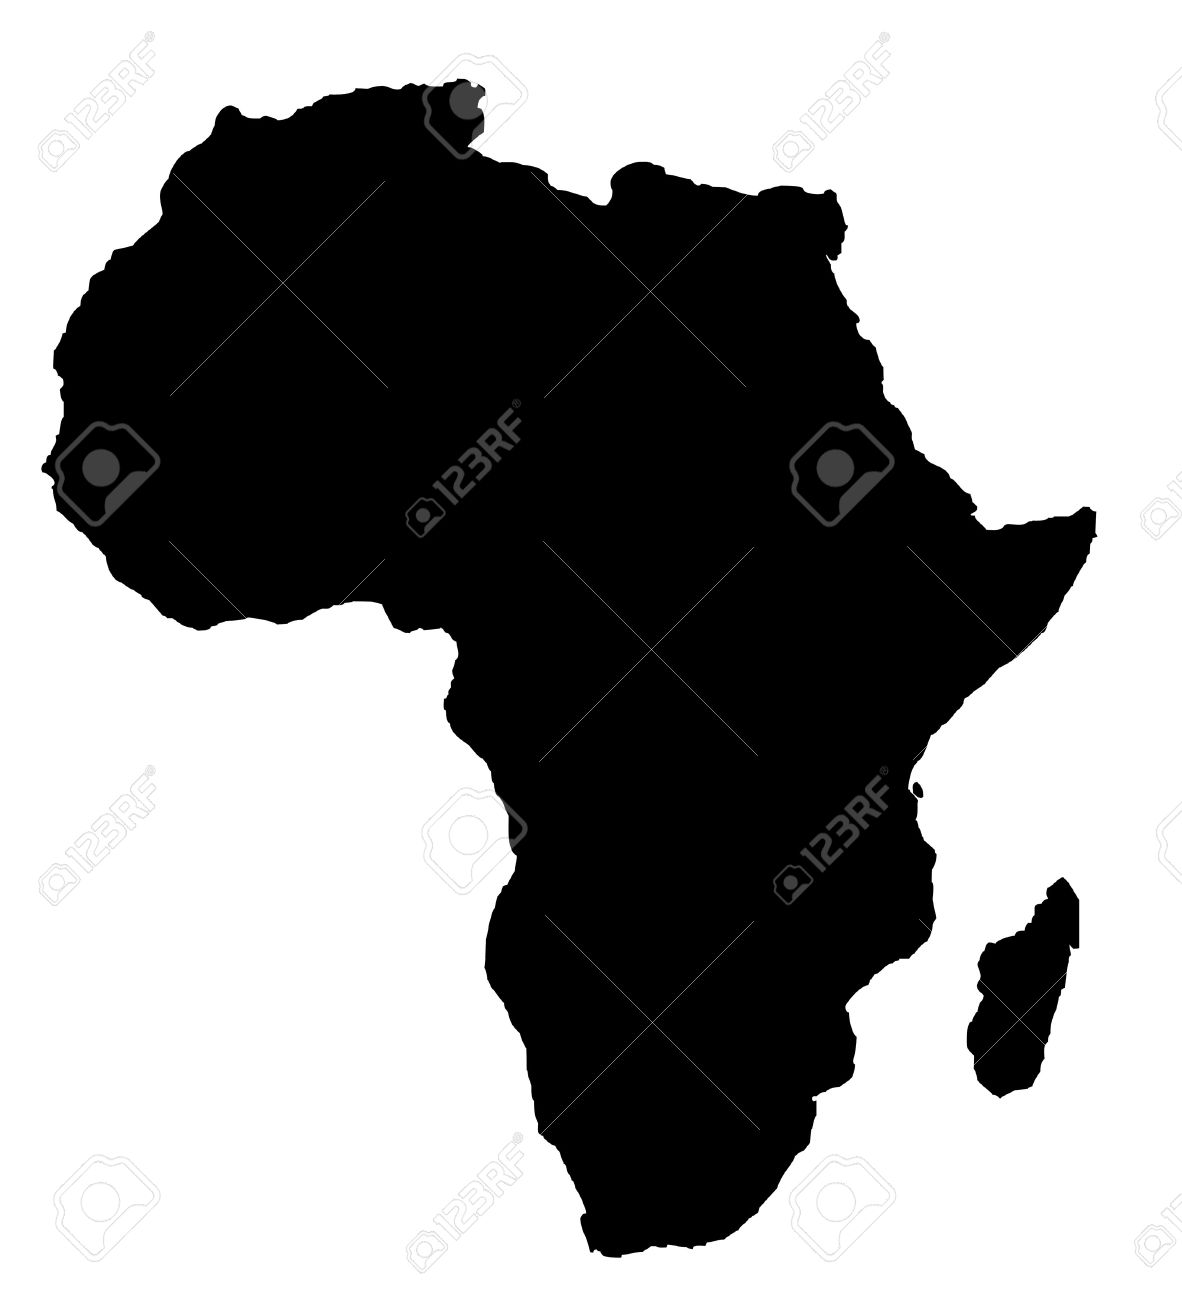 Outline Map Of Africa Continent In Black Isolated On White